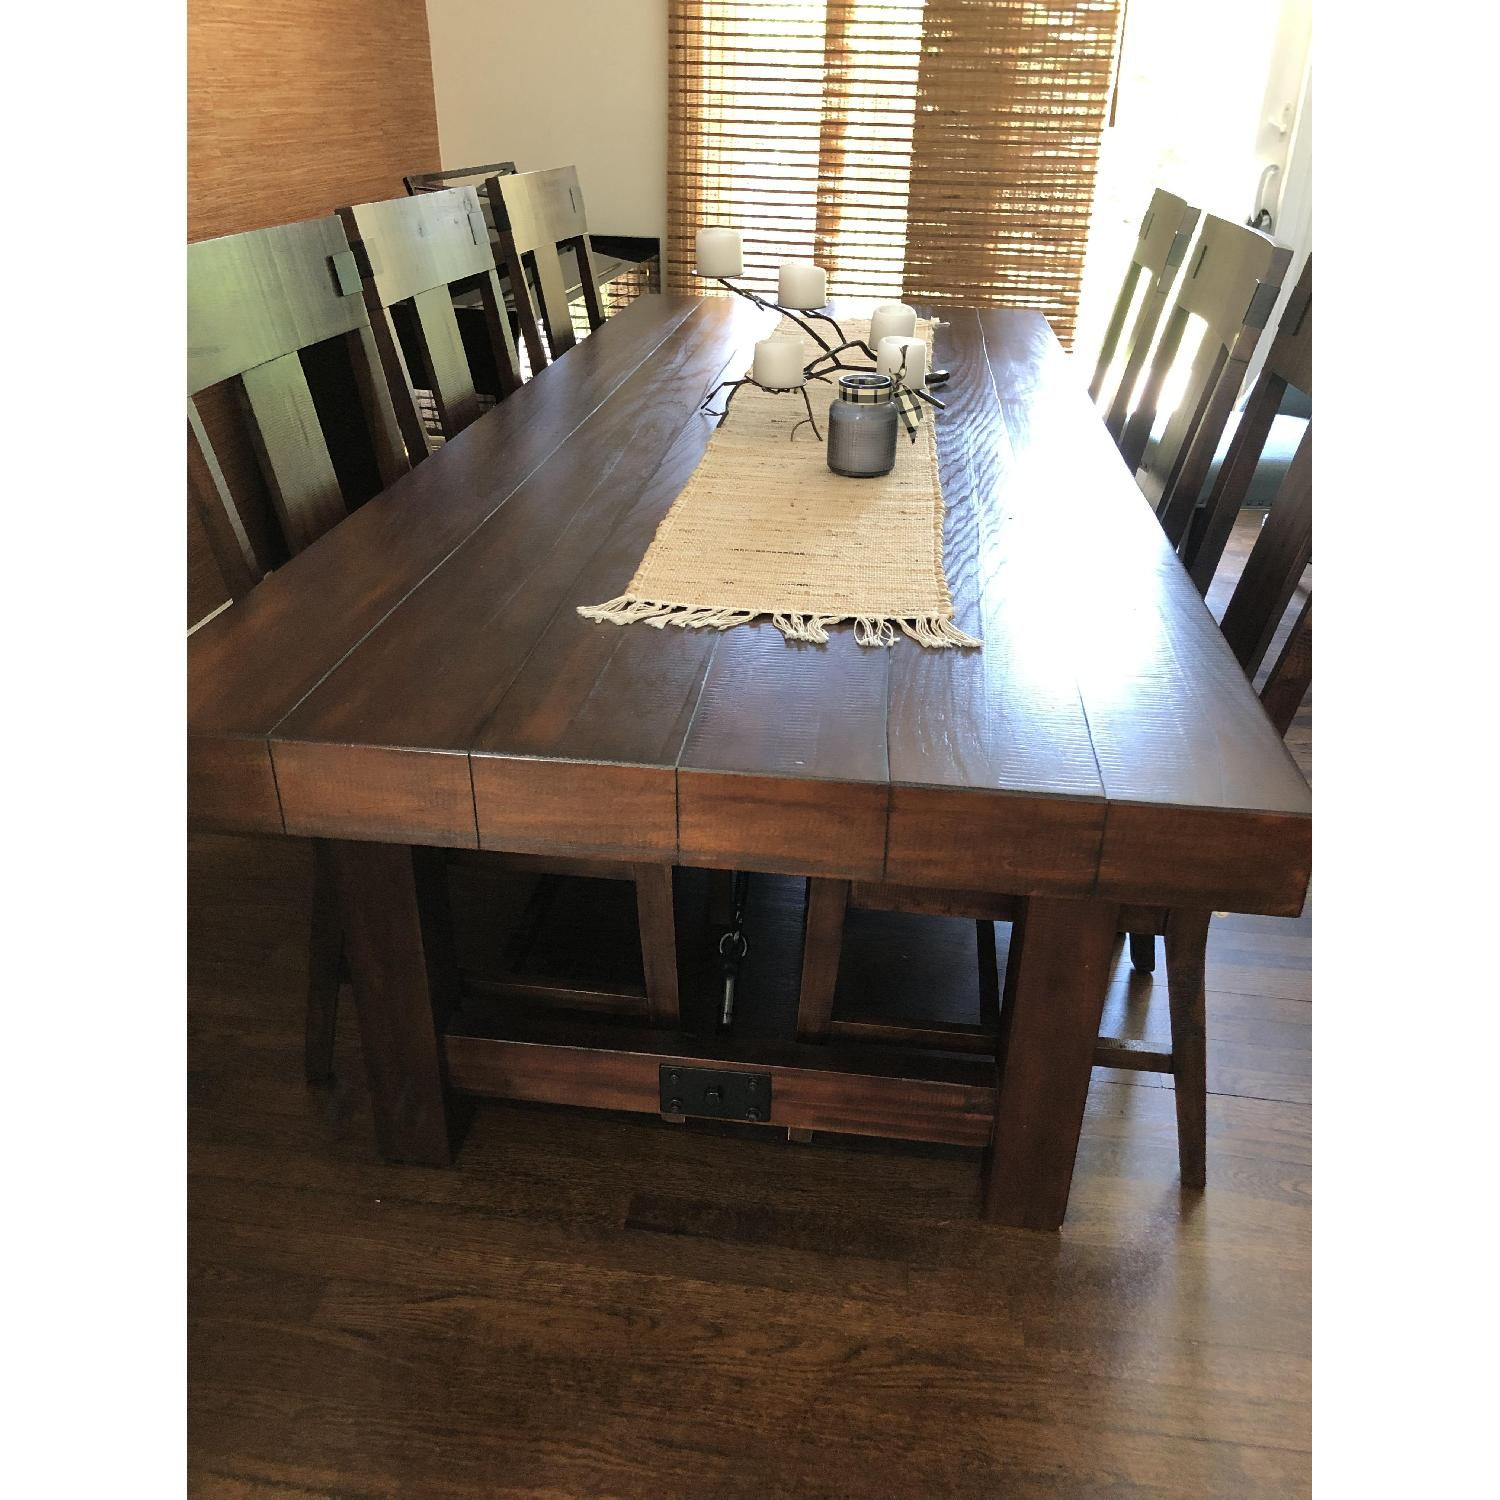 Pier 1 Dining Table w/ 6 Chairs - image-3